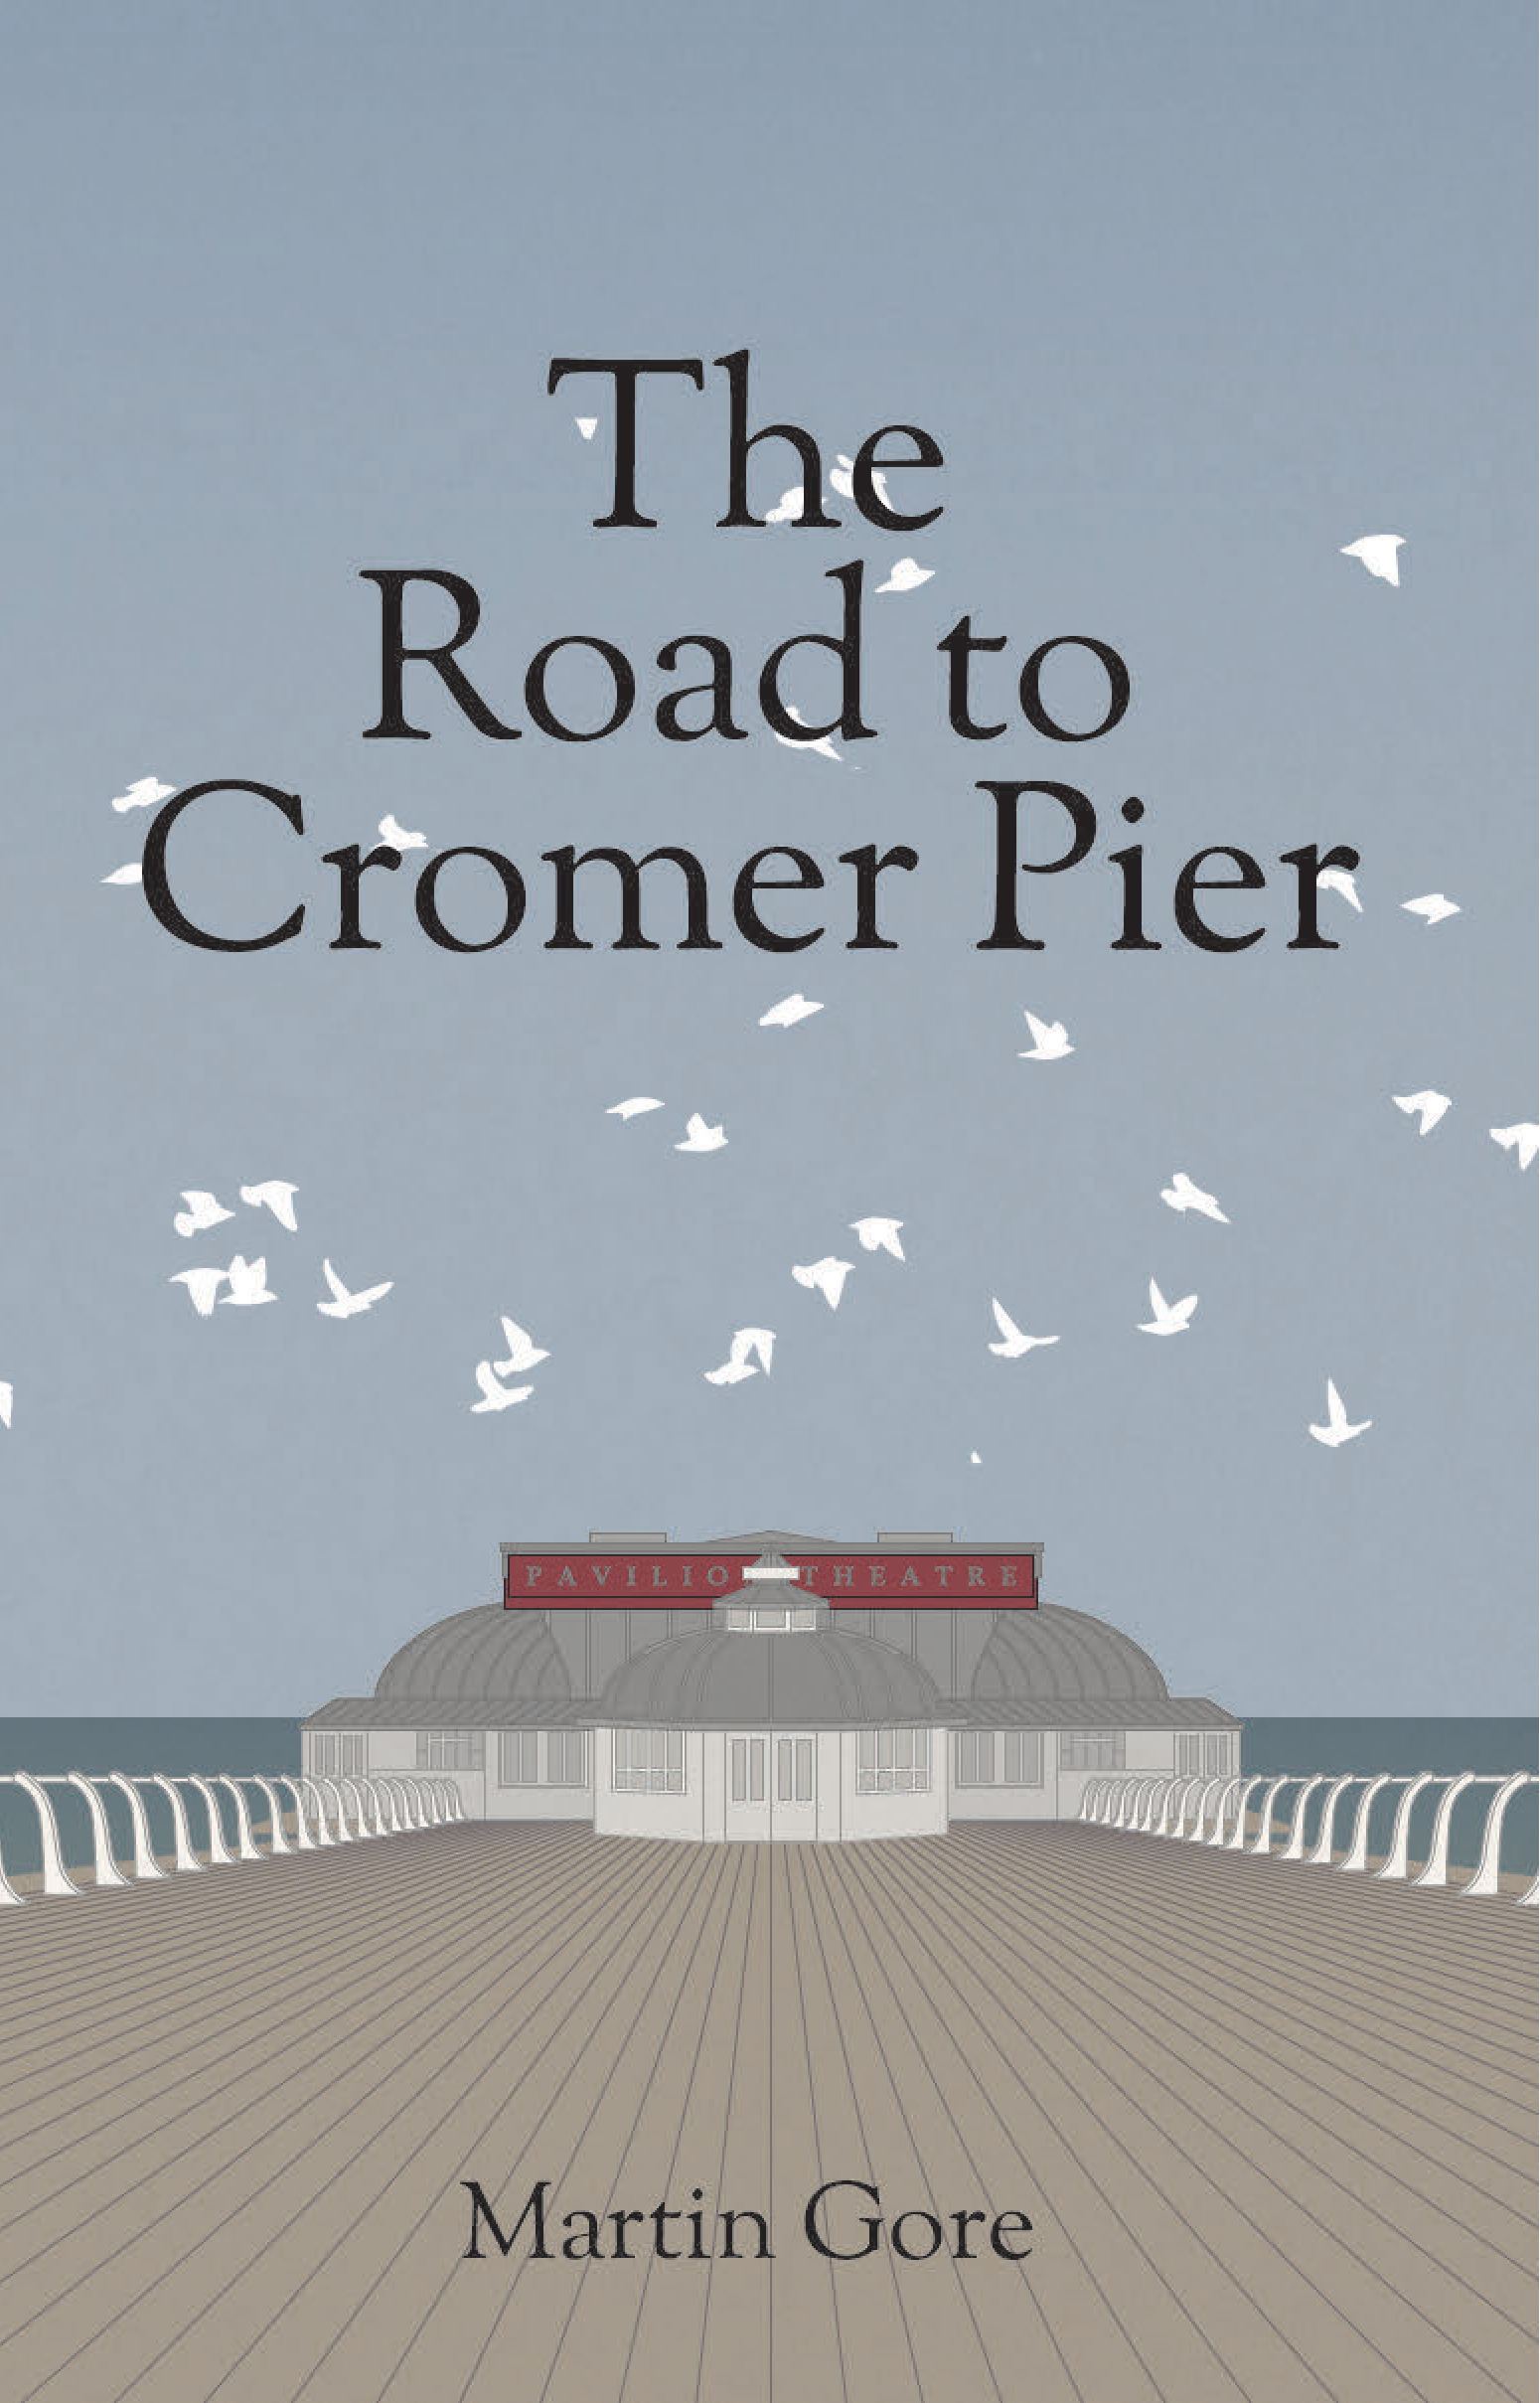 Review: The Road to Cromer Pier, by Martin Gore